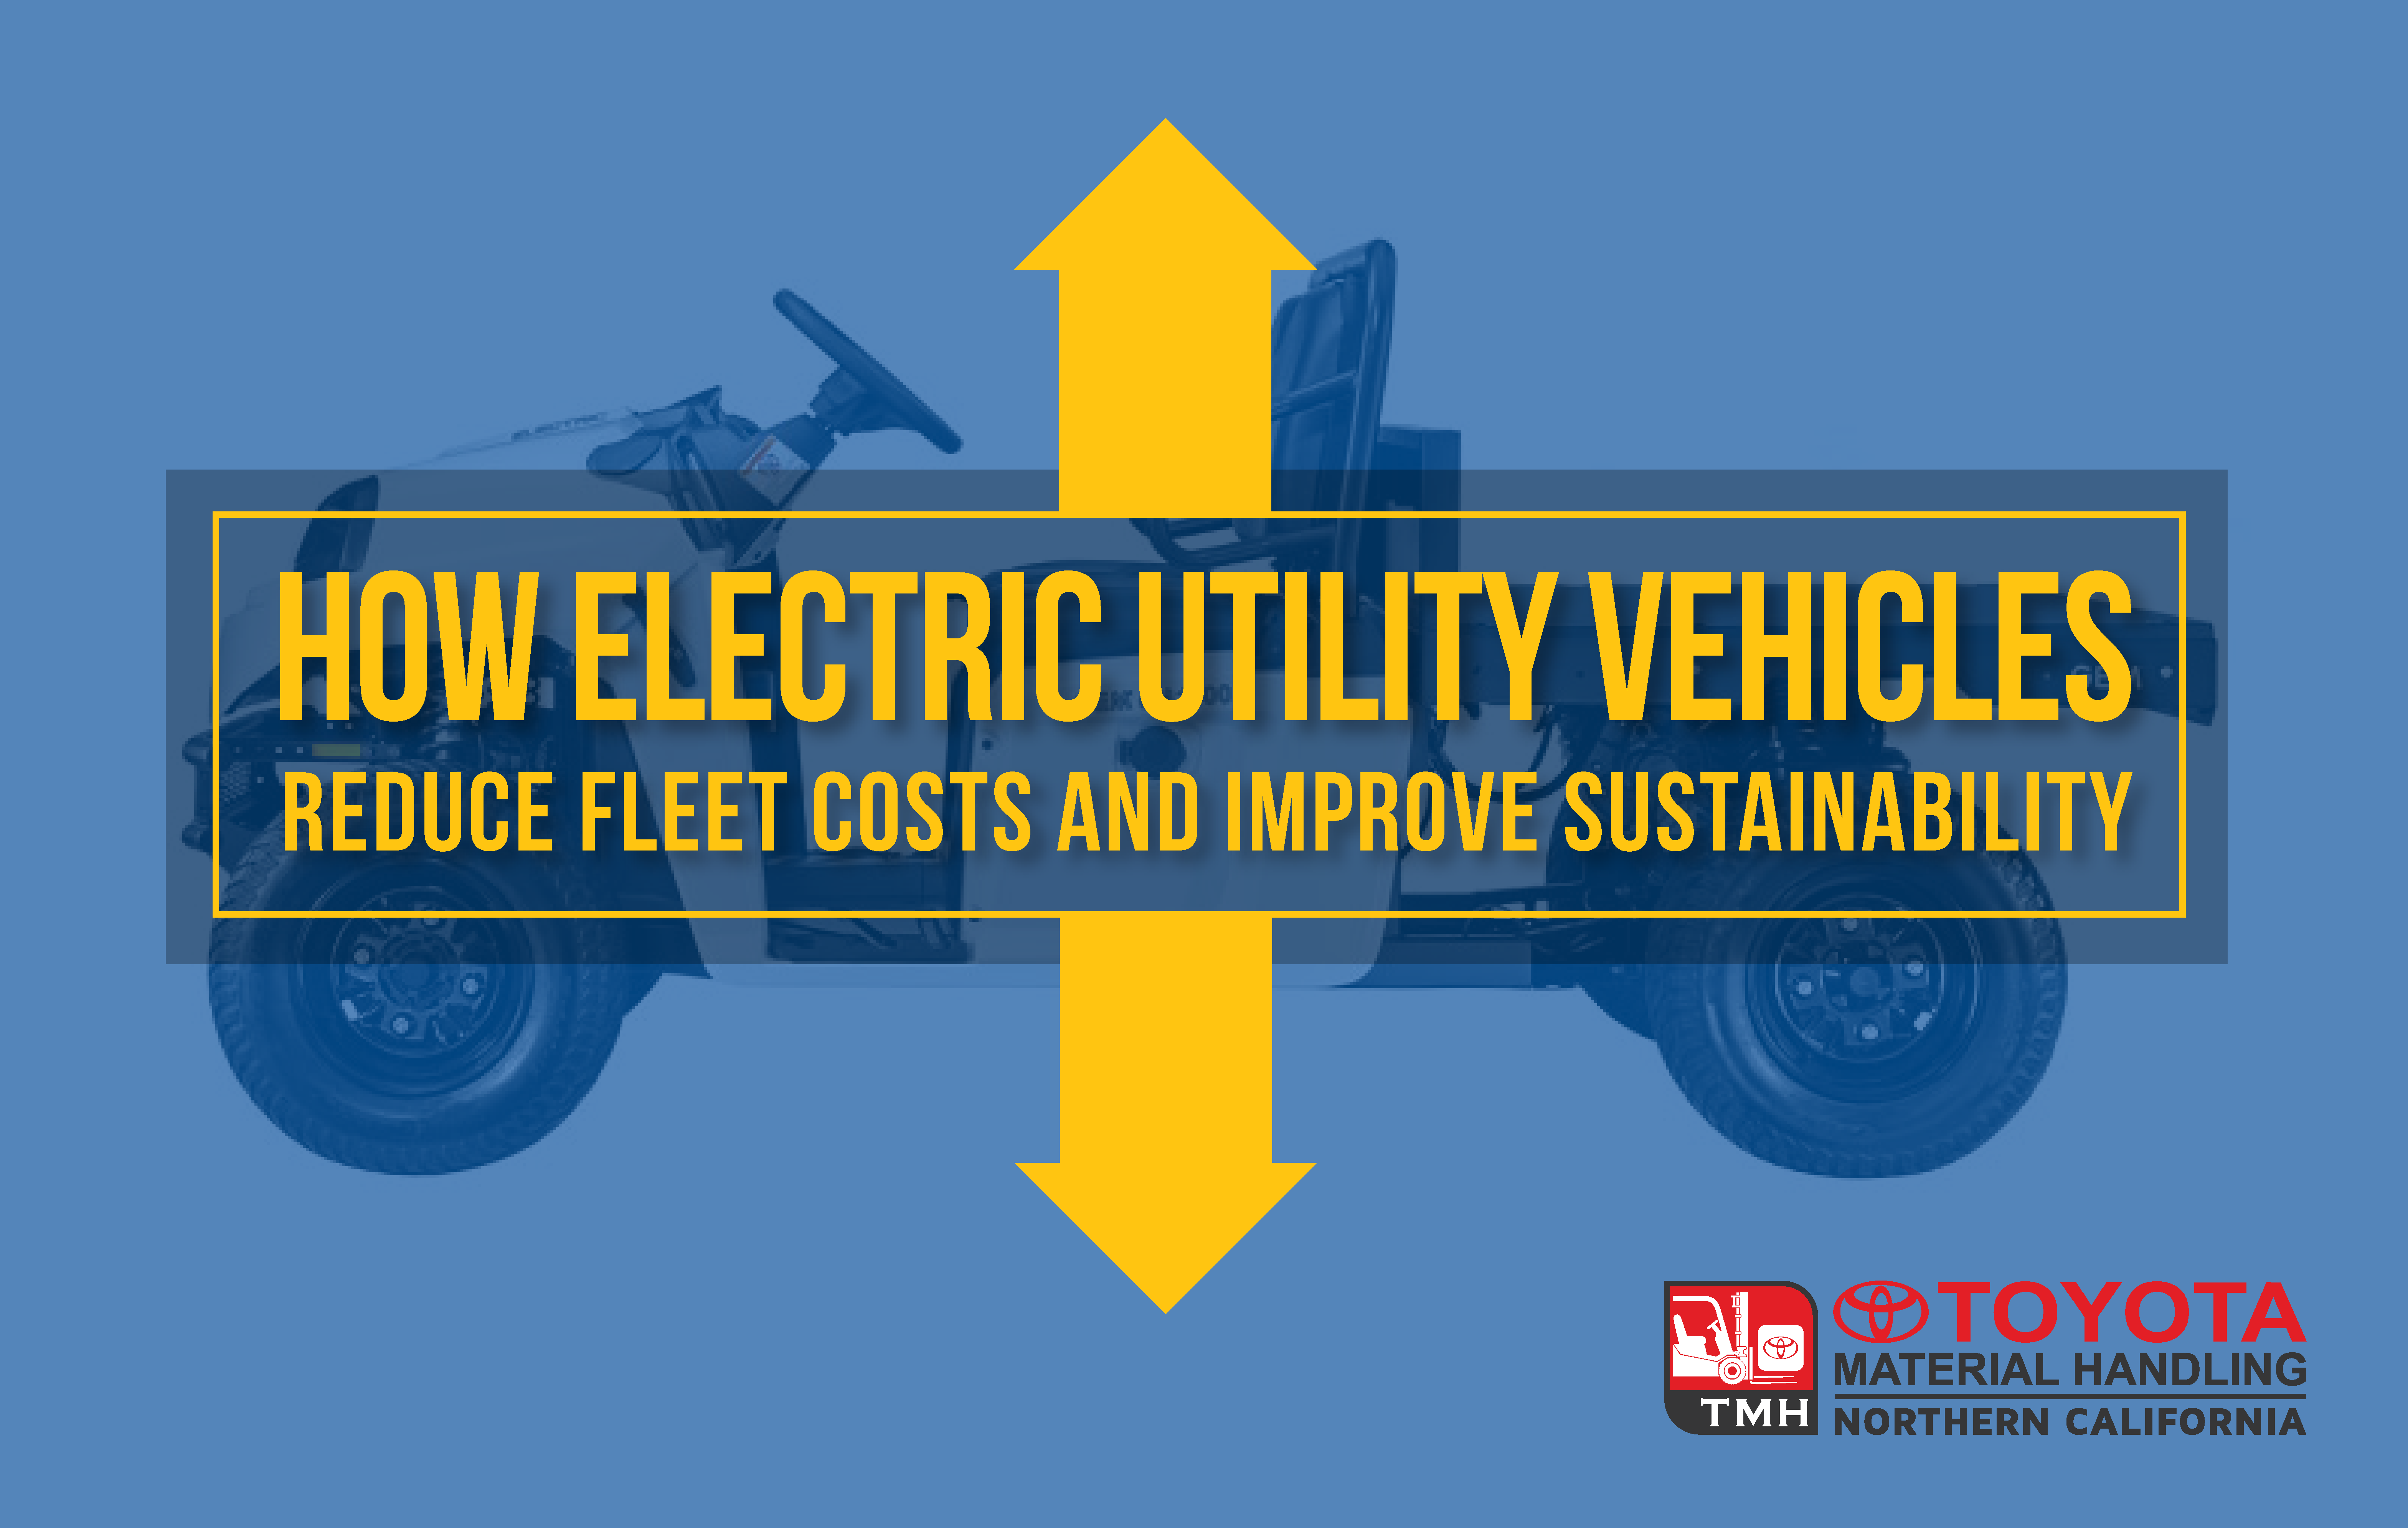 GEM electric utility vehicles reduce fleet costs and improve sustainability